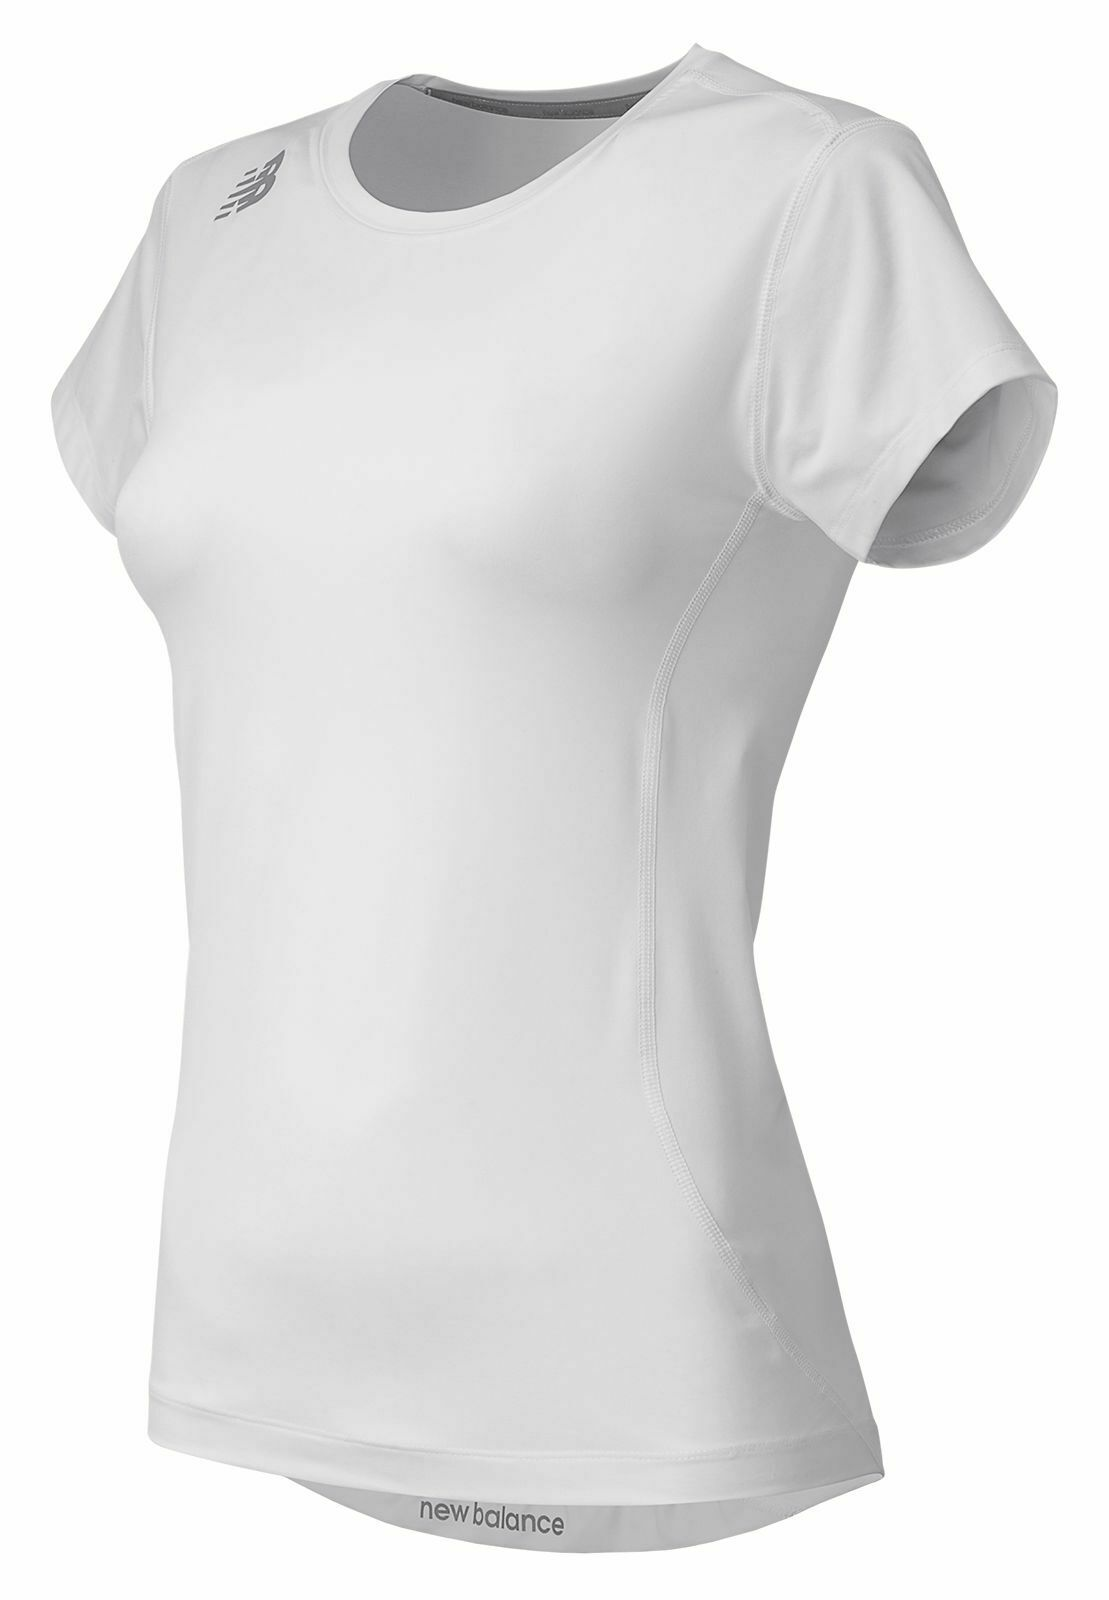 New Balance Women's NB Short Sleeve Compression Top White